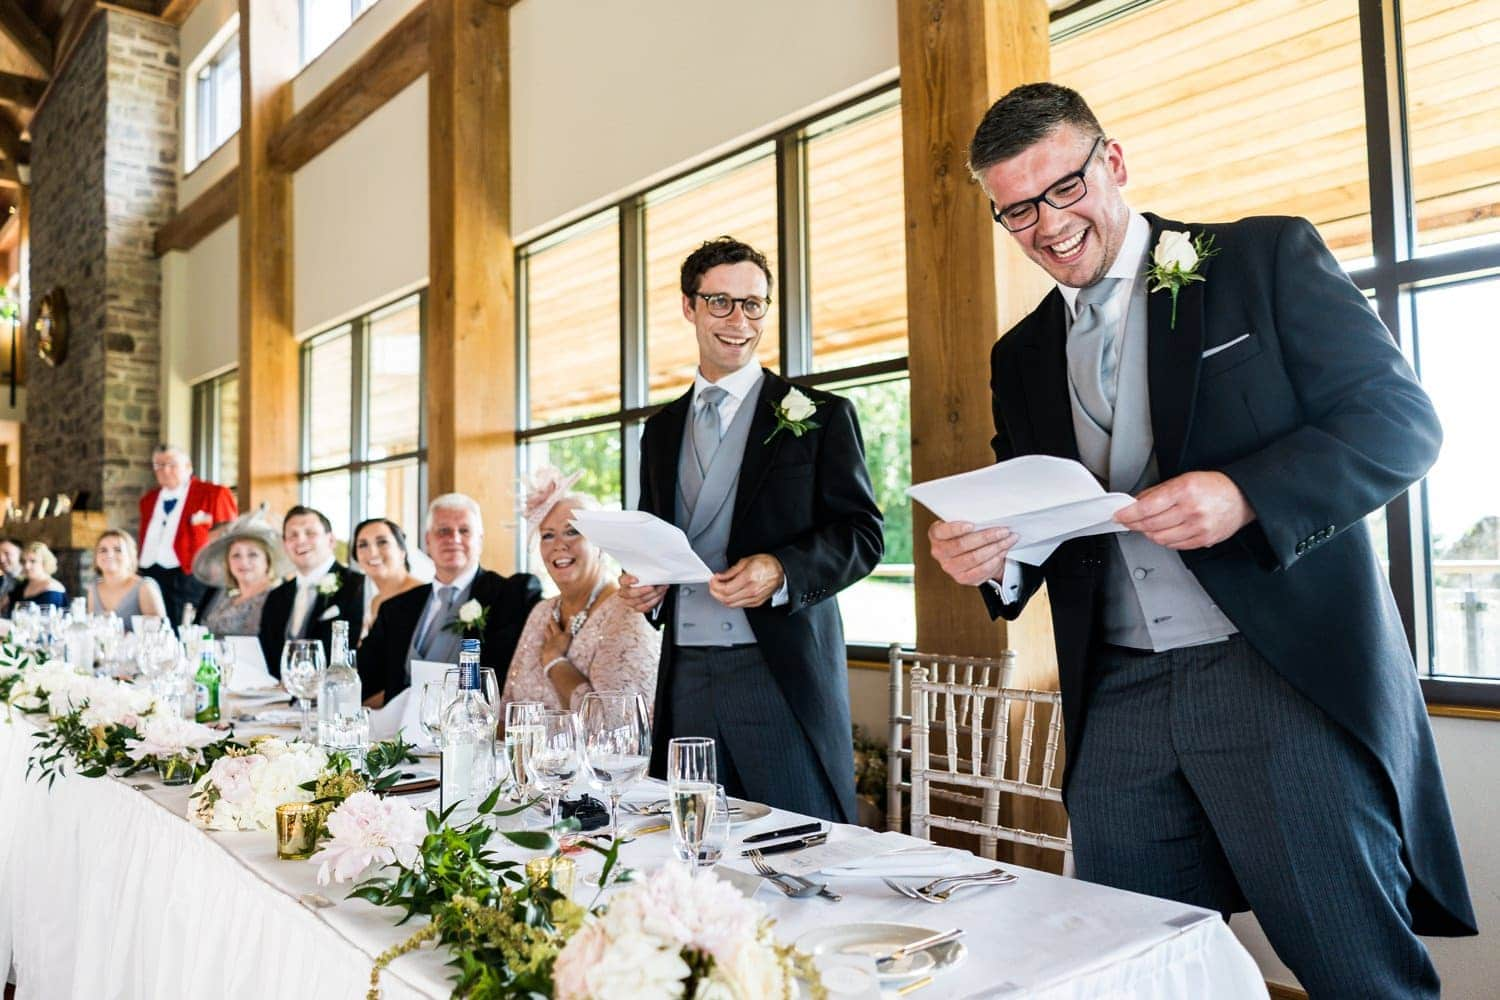 Wedding reception at the 2010 Clubhouse, Celtic Manor